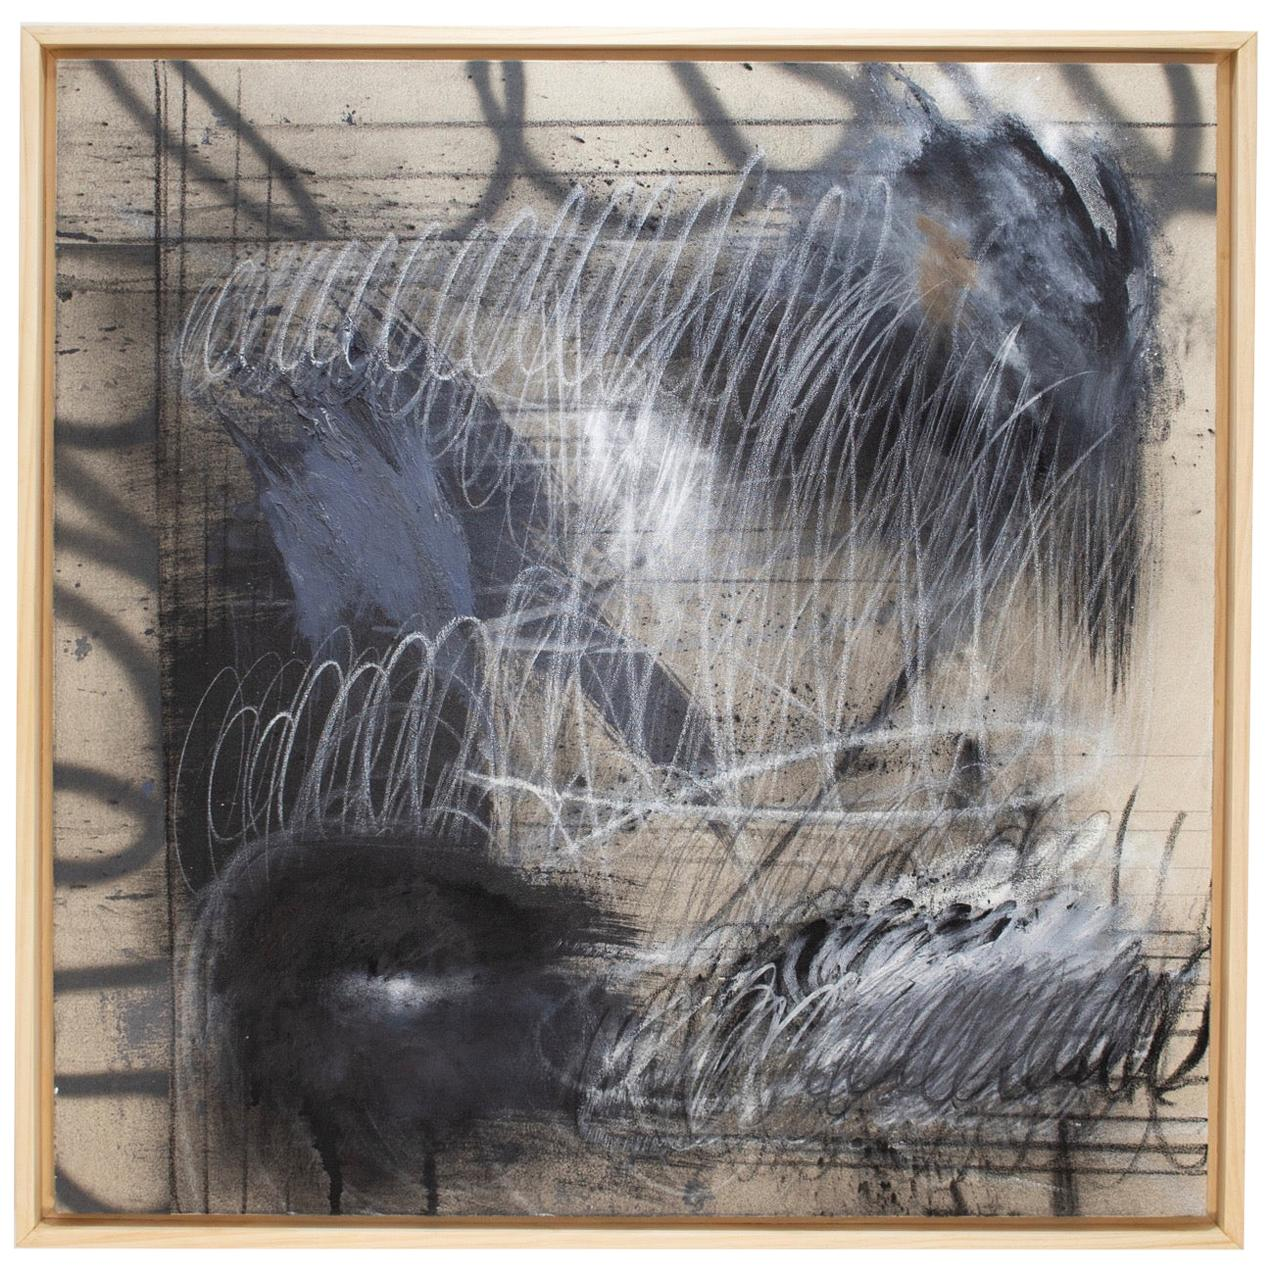 Untitled I Mixed-Media on Canvas by Sarah Dupré